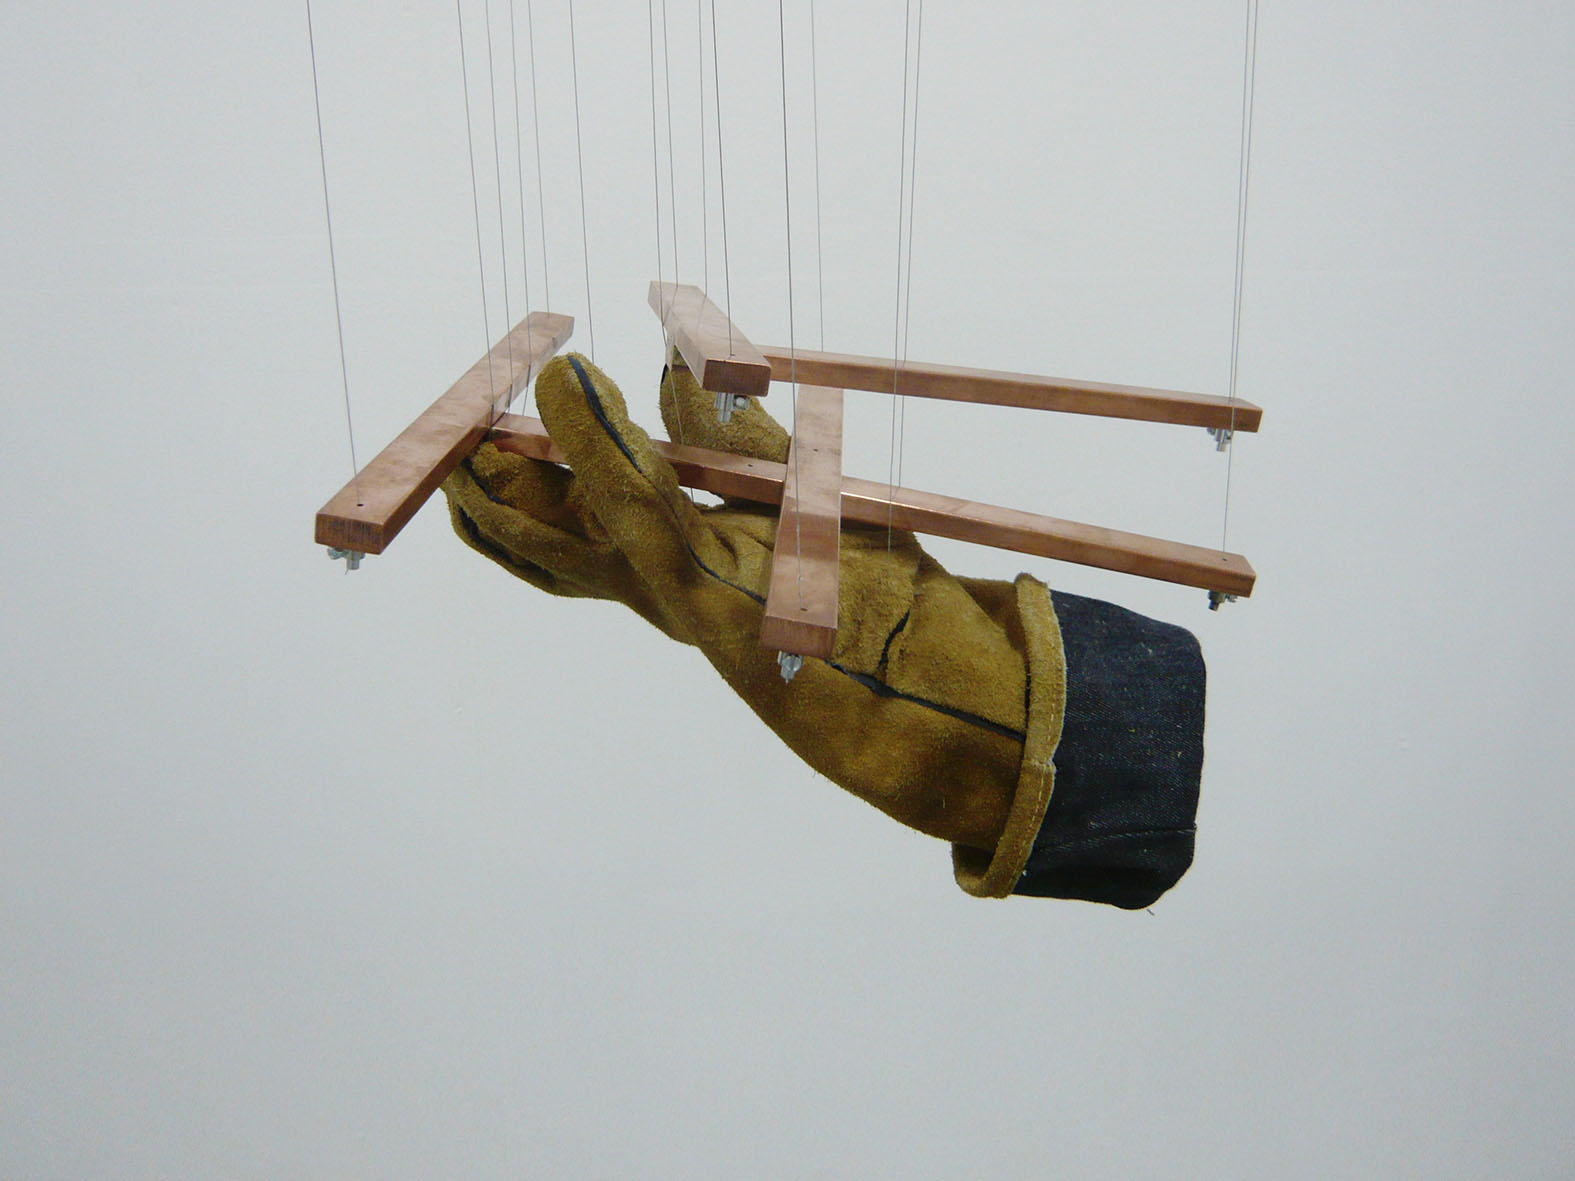 Juan Luis Moraza - Servomechanism Puppet (Will you?). 2017. Bronce, plomo, cable y poleas de acero, guante de cuero / Bronze, lead, cable and steel pulleys, leather glove. 30 x 30 x 30 cm.